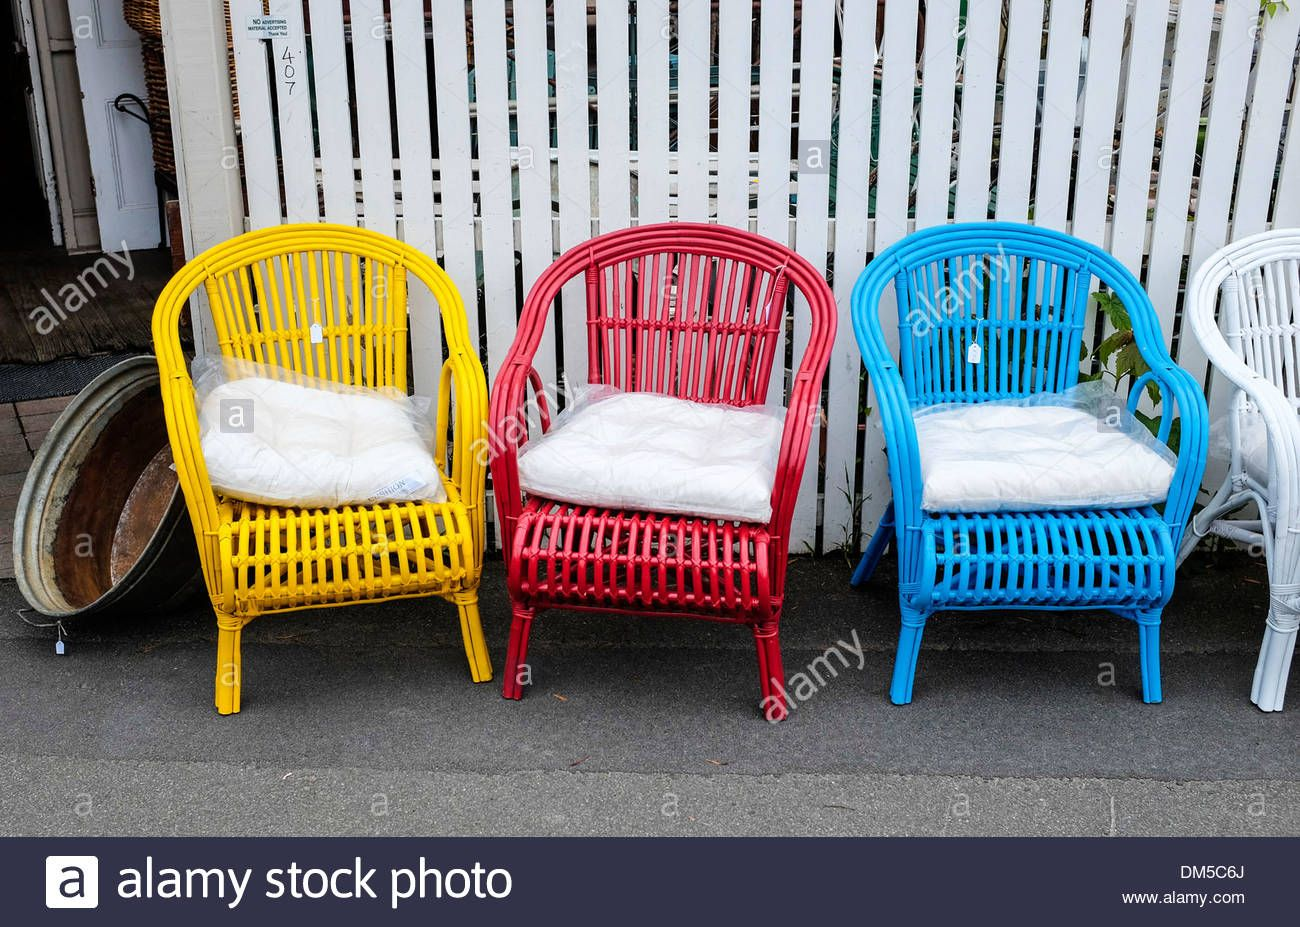 Download this stock image brightly painted cane chairs outside an antique shop in south hobart tasmania dm5c6j from alamys library of millions of high